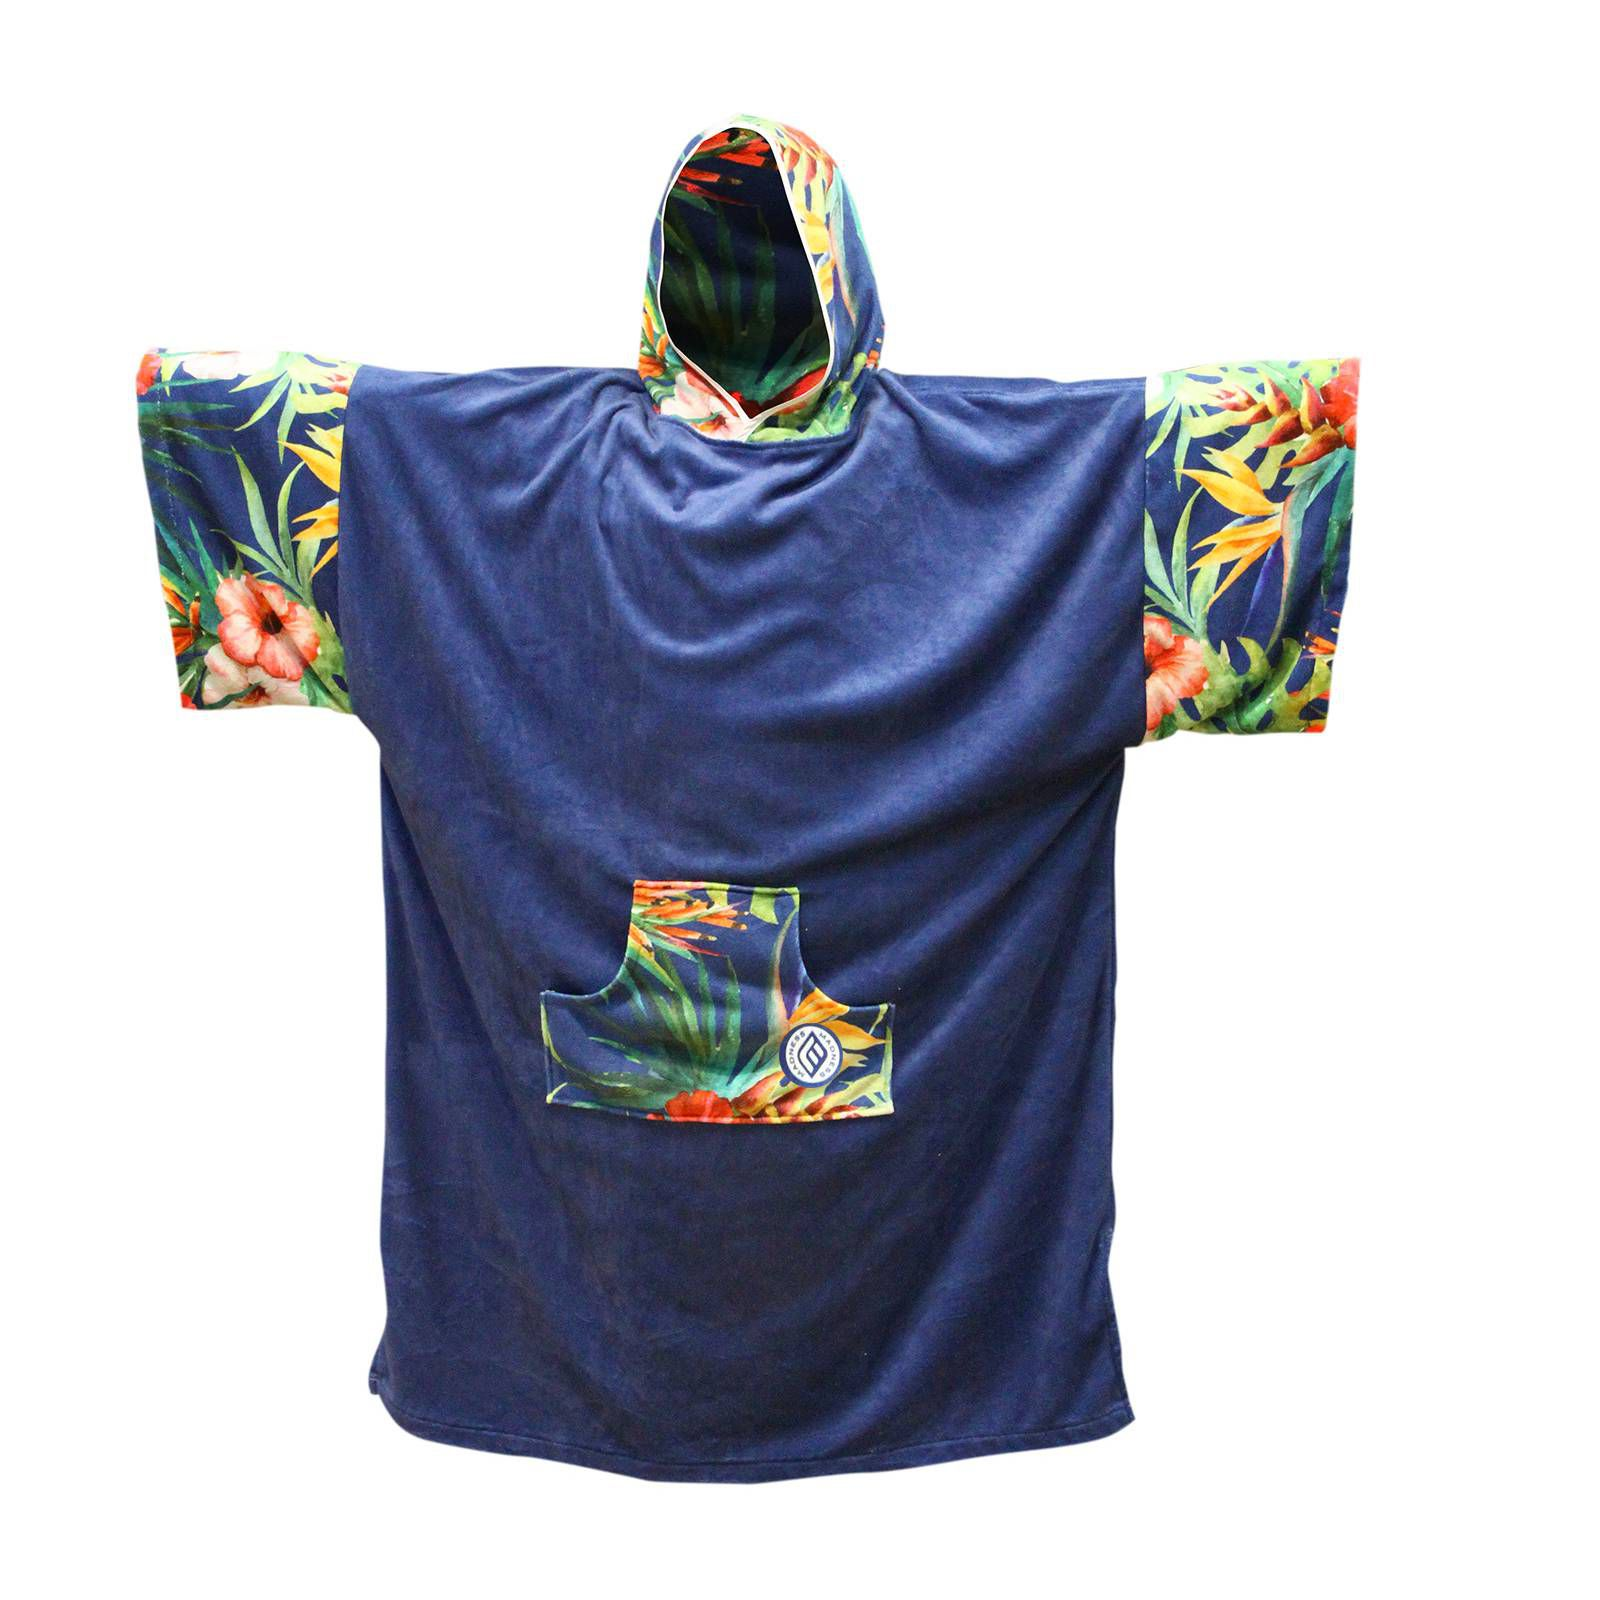 MADNESS Change Robe Poncho Unisize Navy-Flower